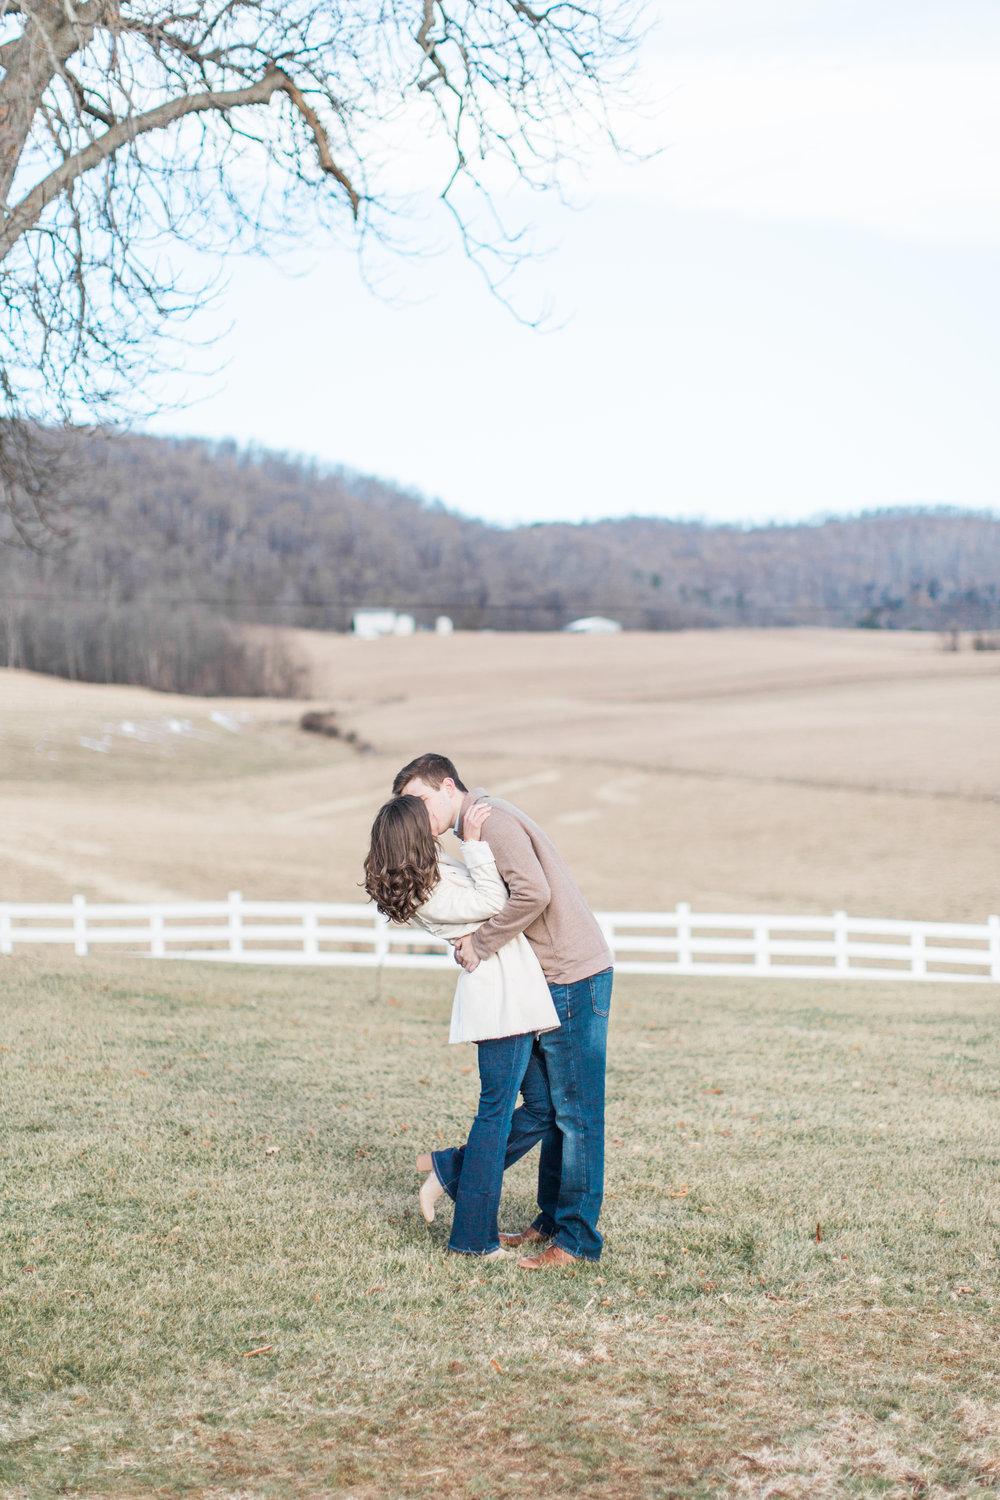 Abigail_Jill_Photography_Maryland_Engagement_Farm_Emily_Justin186.jpg